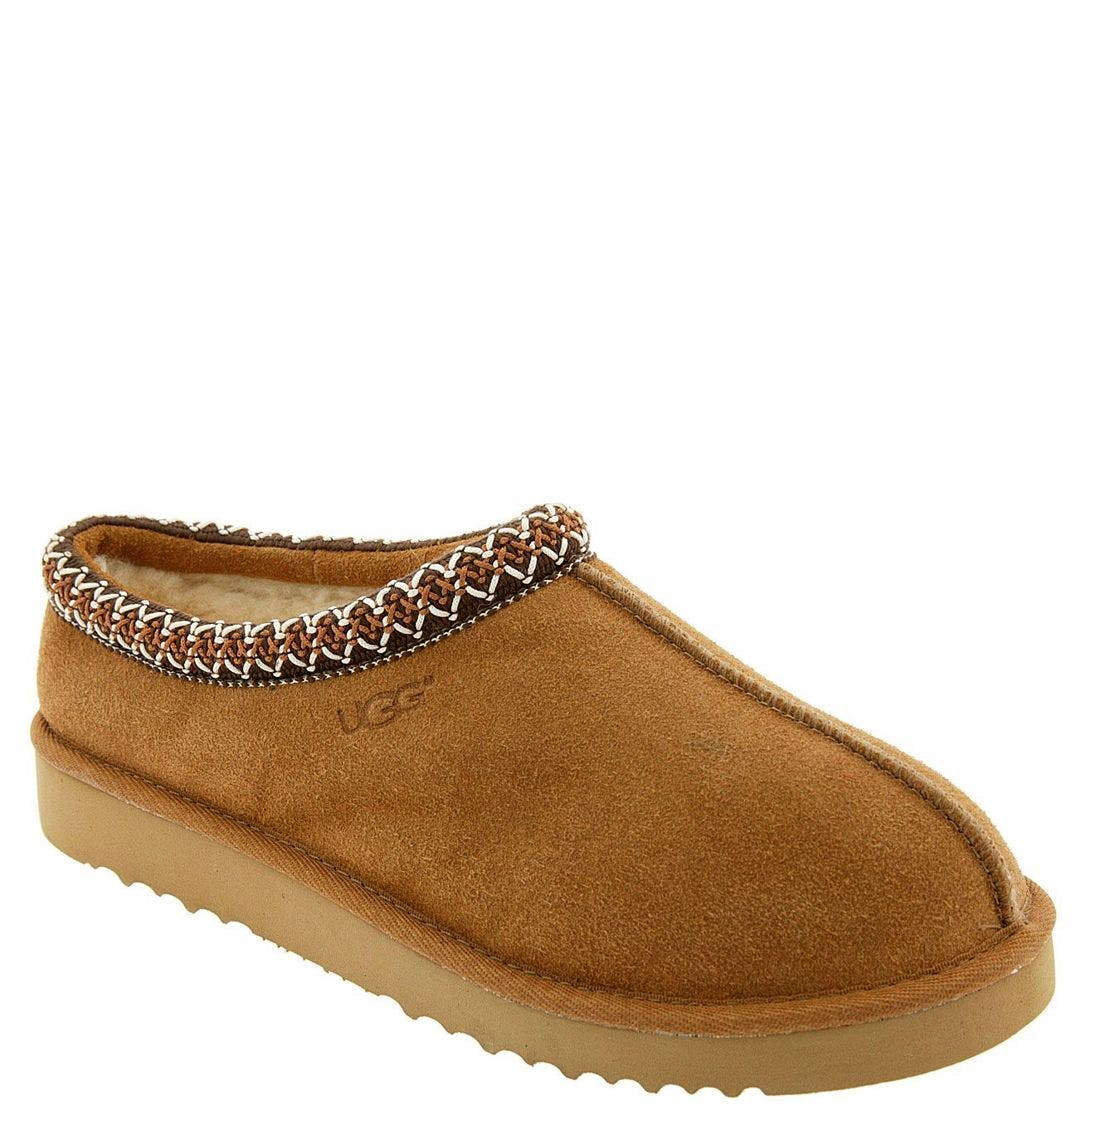 Alternate Image 1 Selected - UGG® 'Tasman' Slipper (Men)